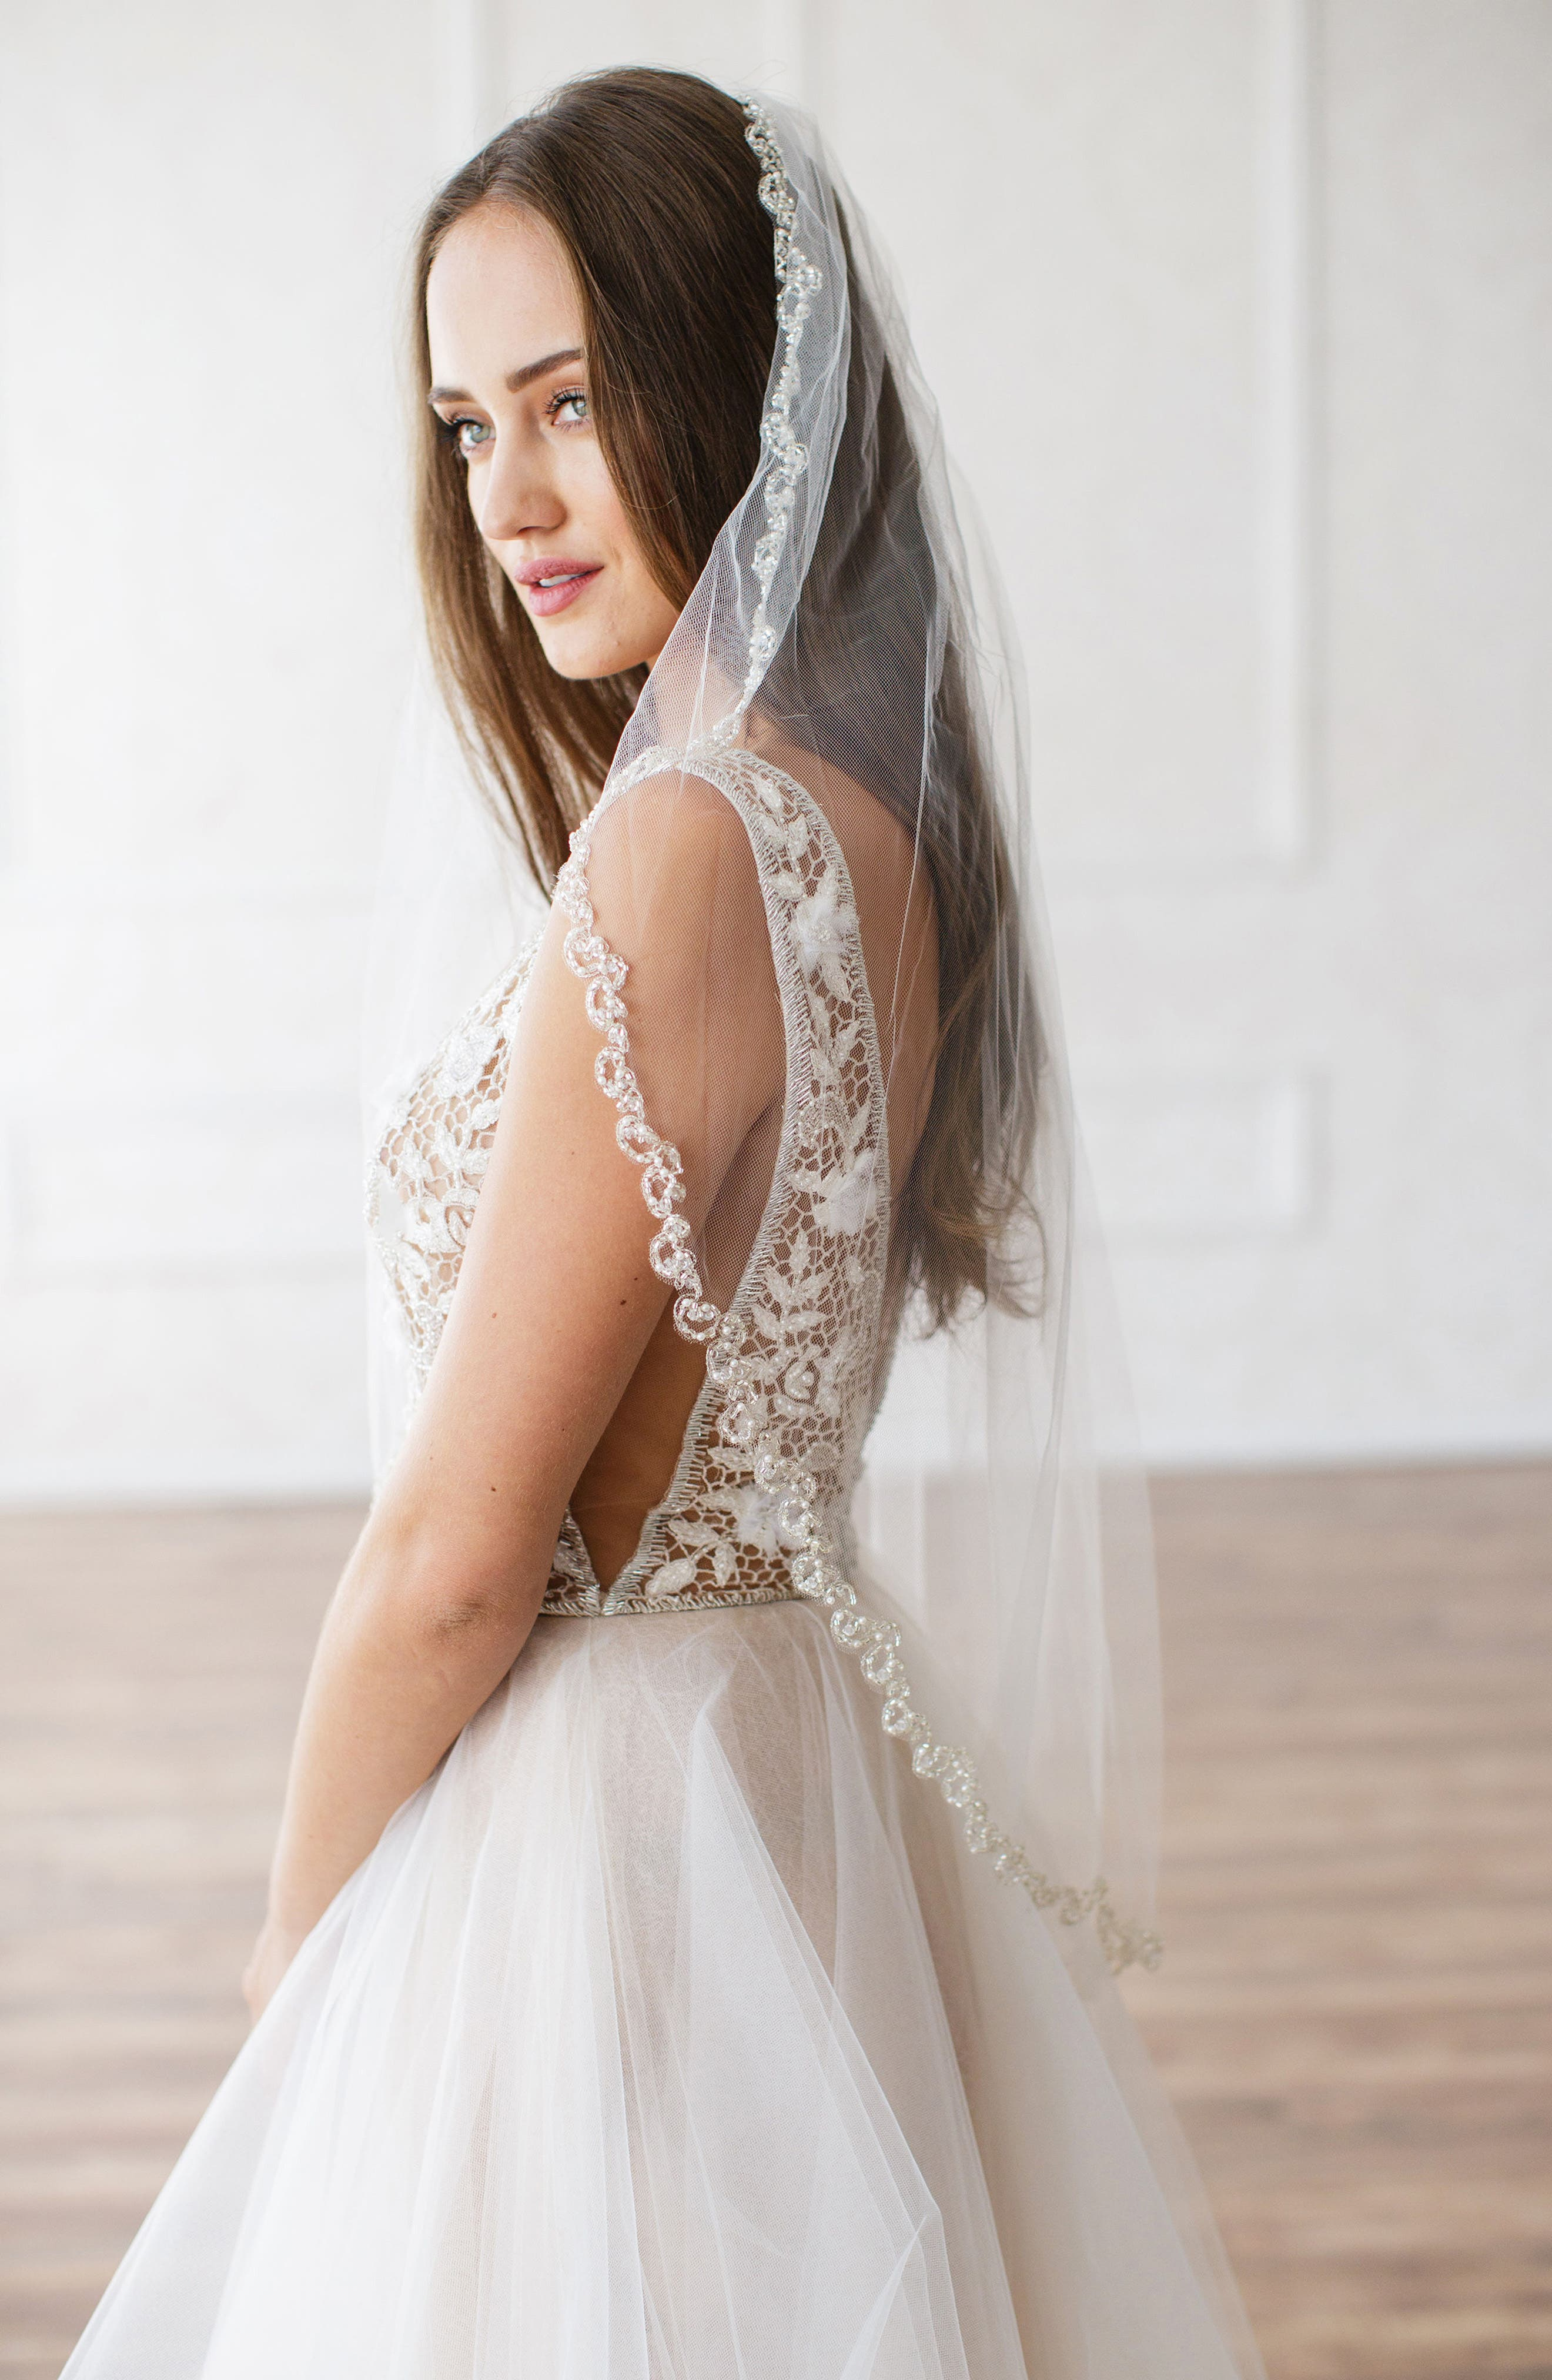 Main Image - Brides & Hairpins 'Lydia' Embellished Tulle Veil